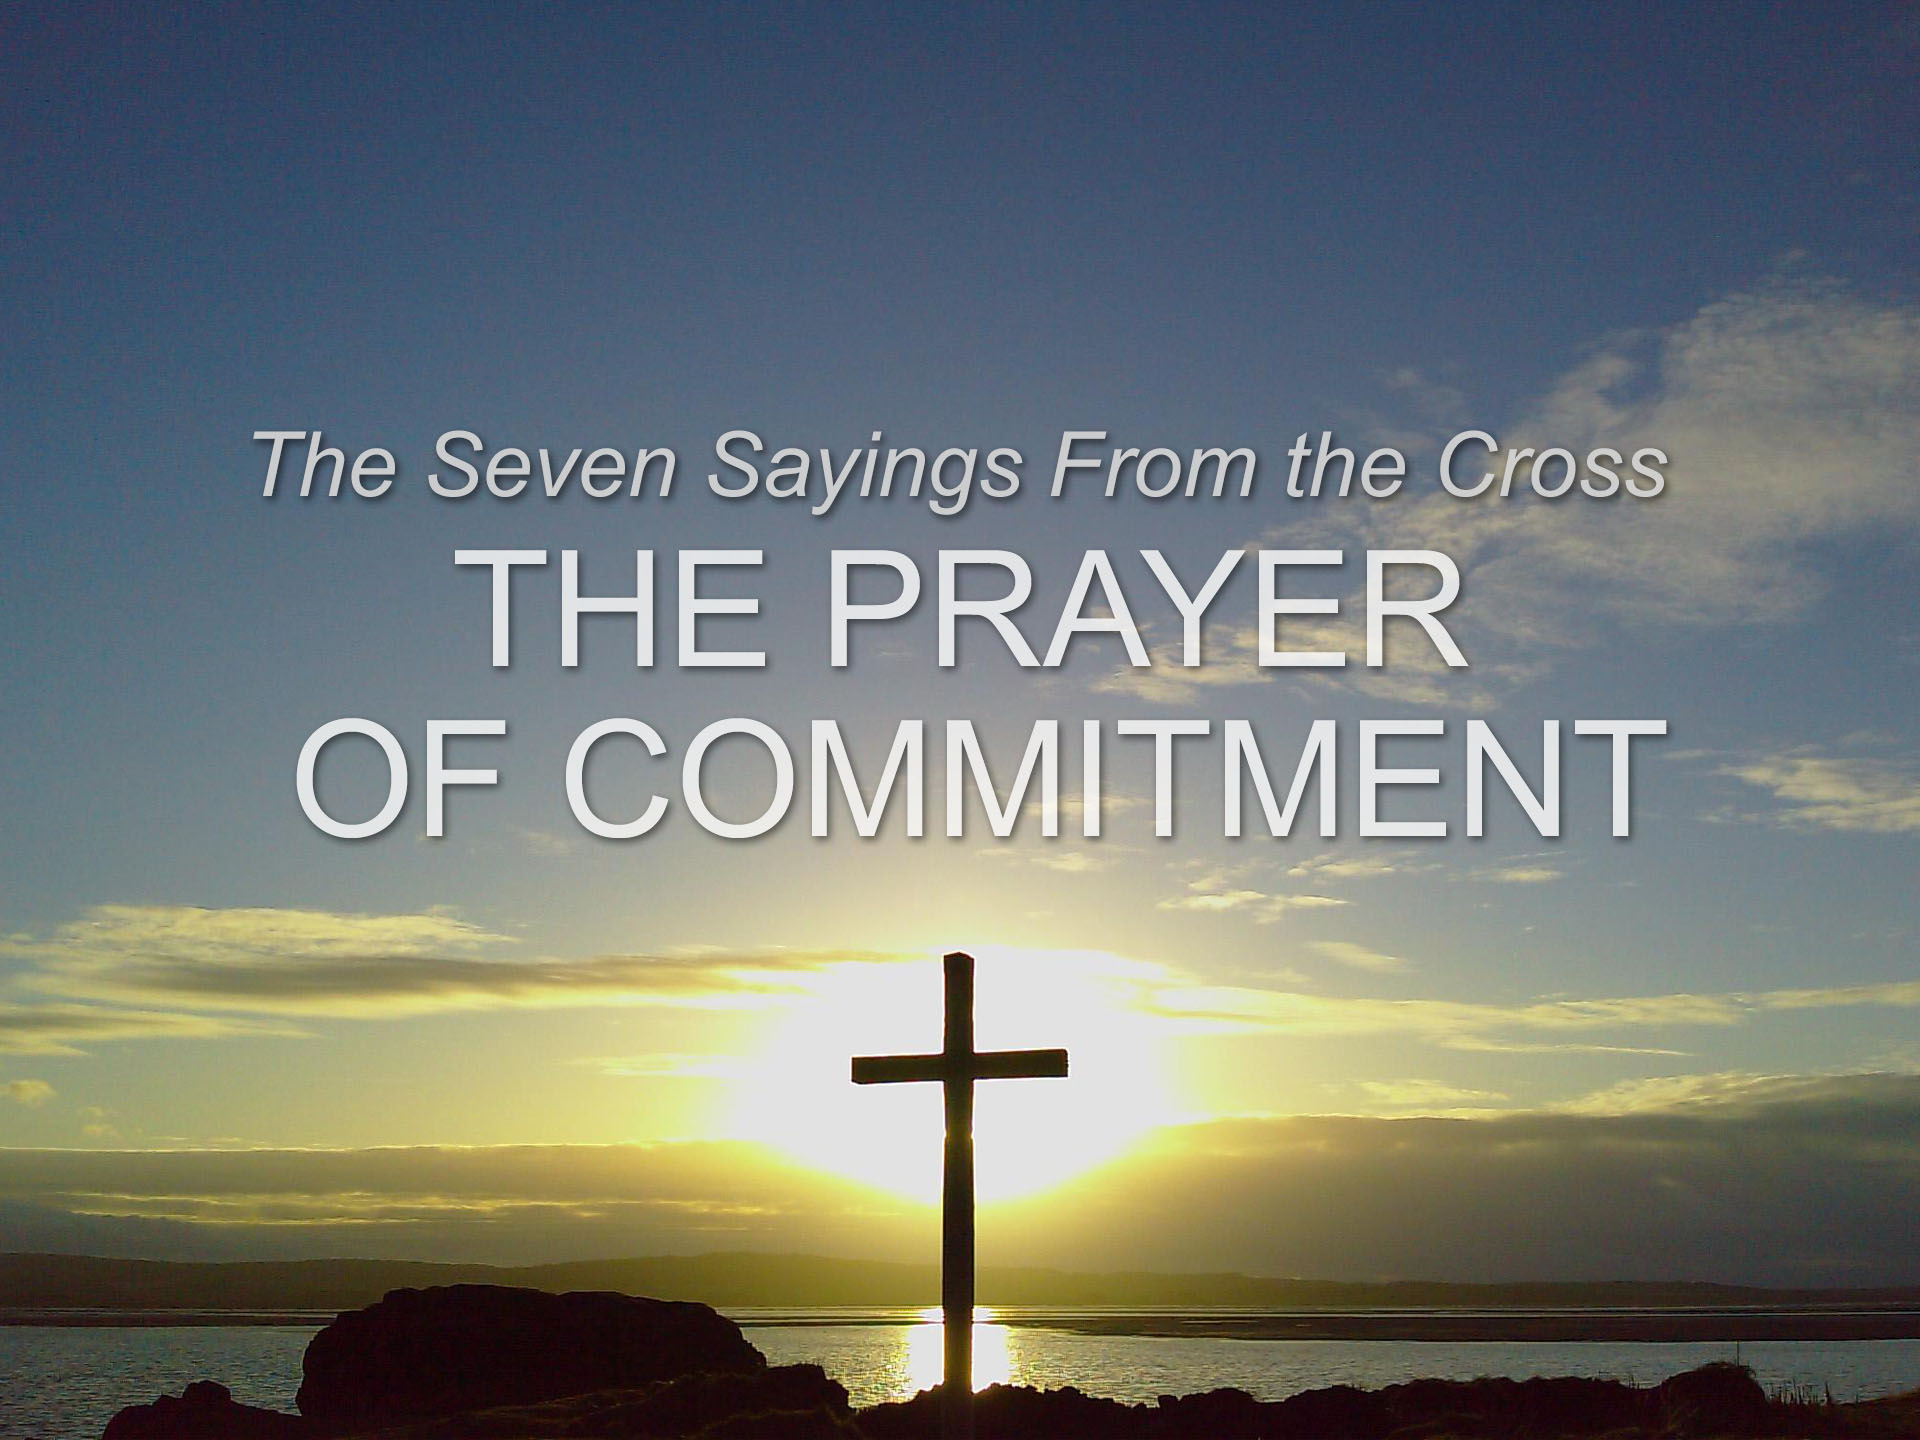 The Seven Sayings from the Cross: The Prayer of Commitment